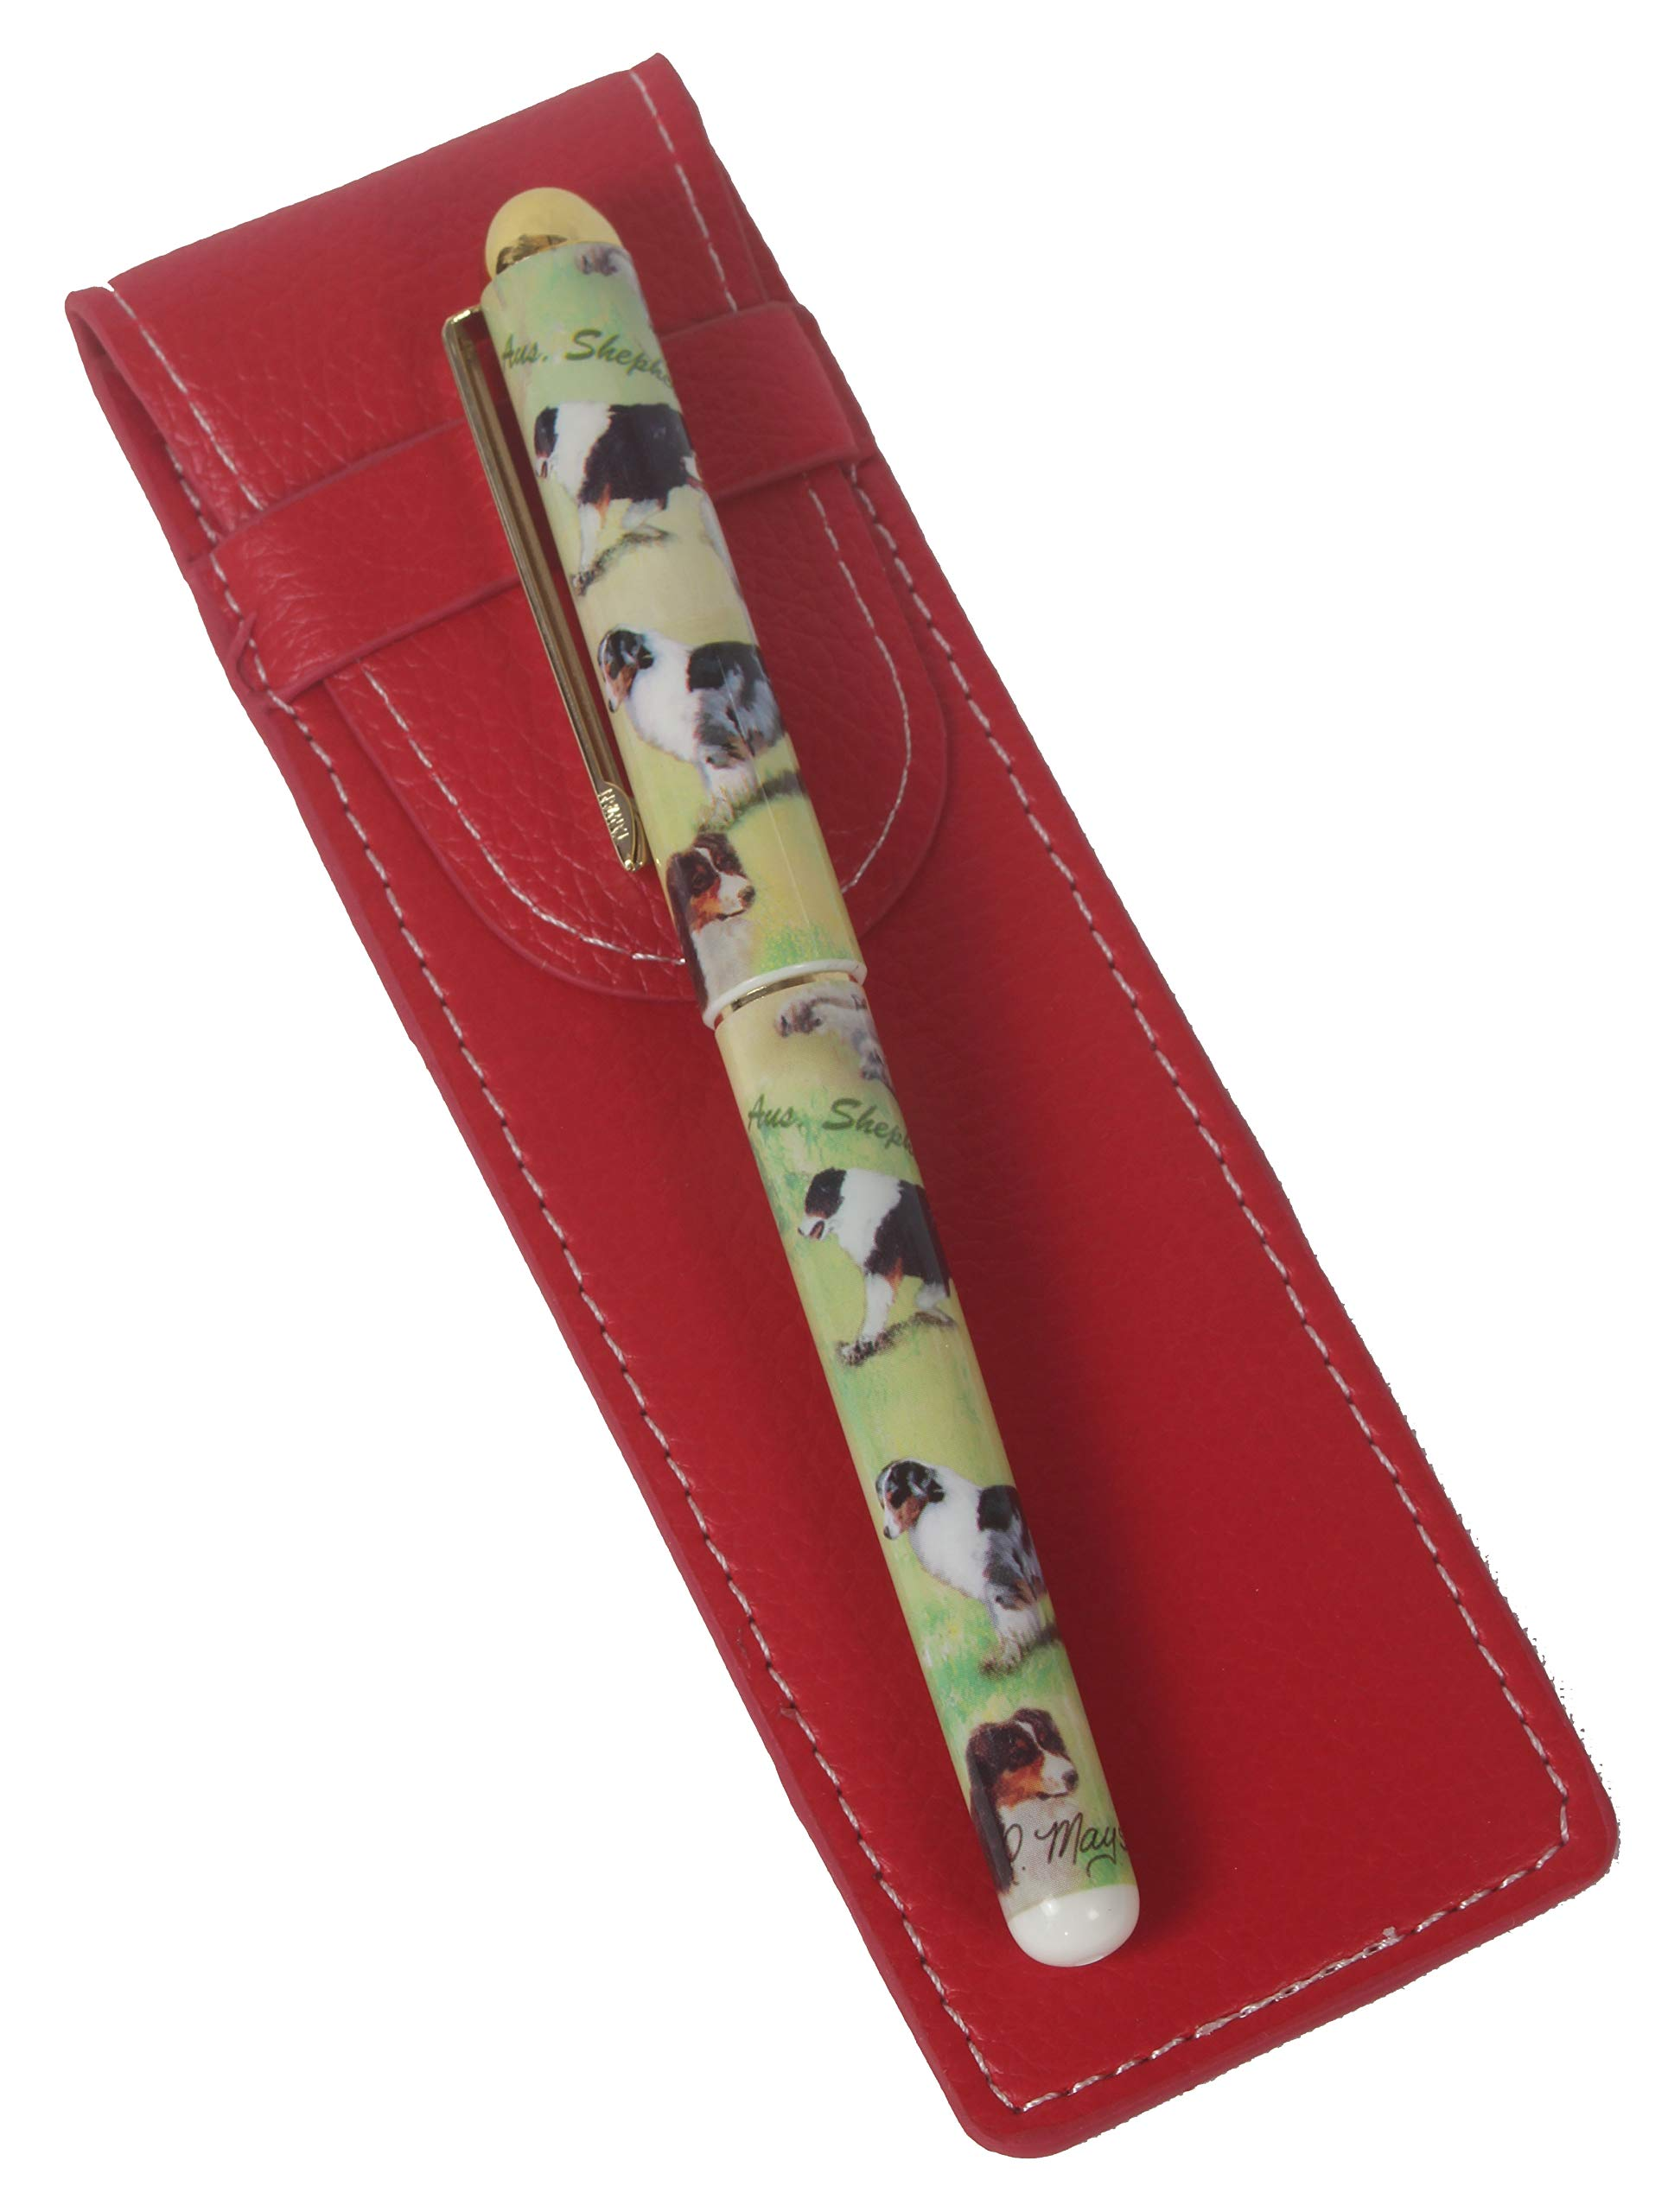 Australian Shepherd Breed of Dog Themed Pen in a Choice of Red or Black Pen Case Perfect Gift (Red)